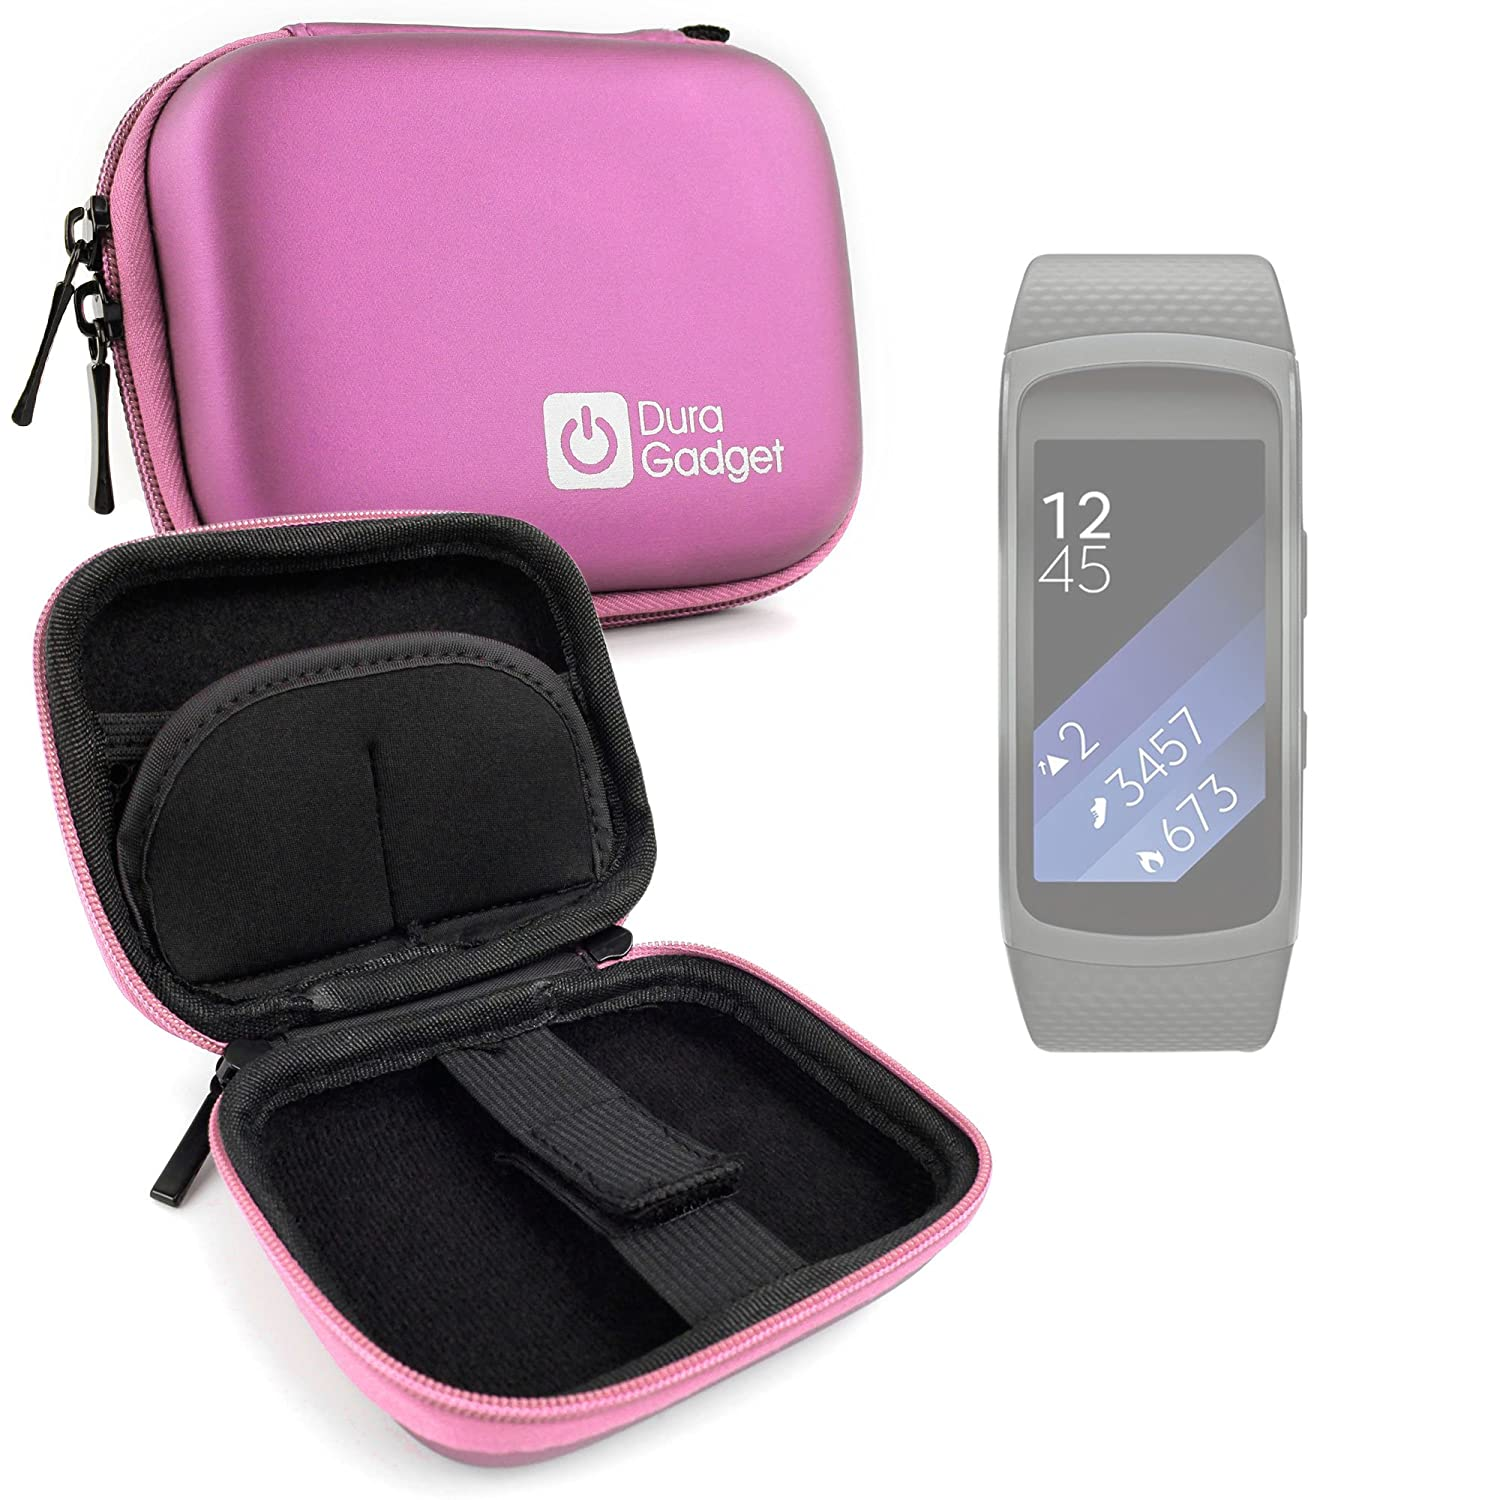 DURAGADGET Estuche Rígido Rosa para CT Cases DZ09, Pebble ...